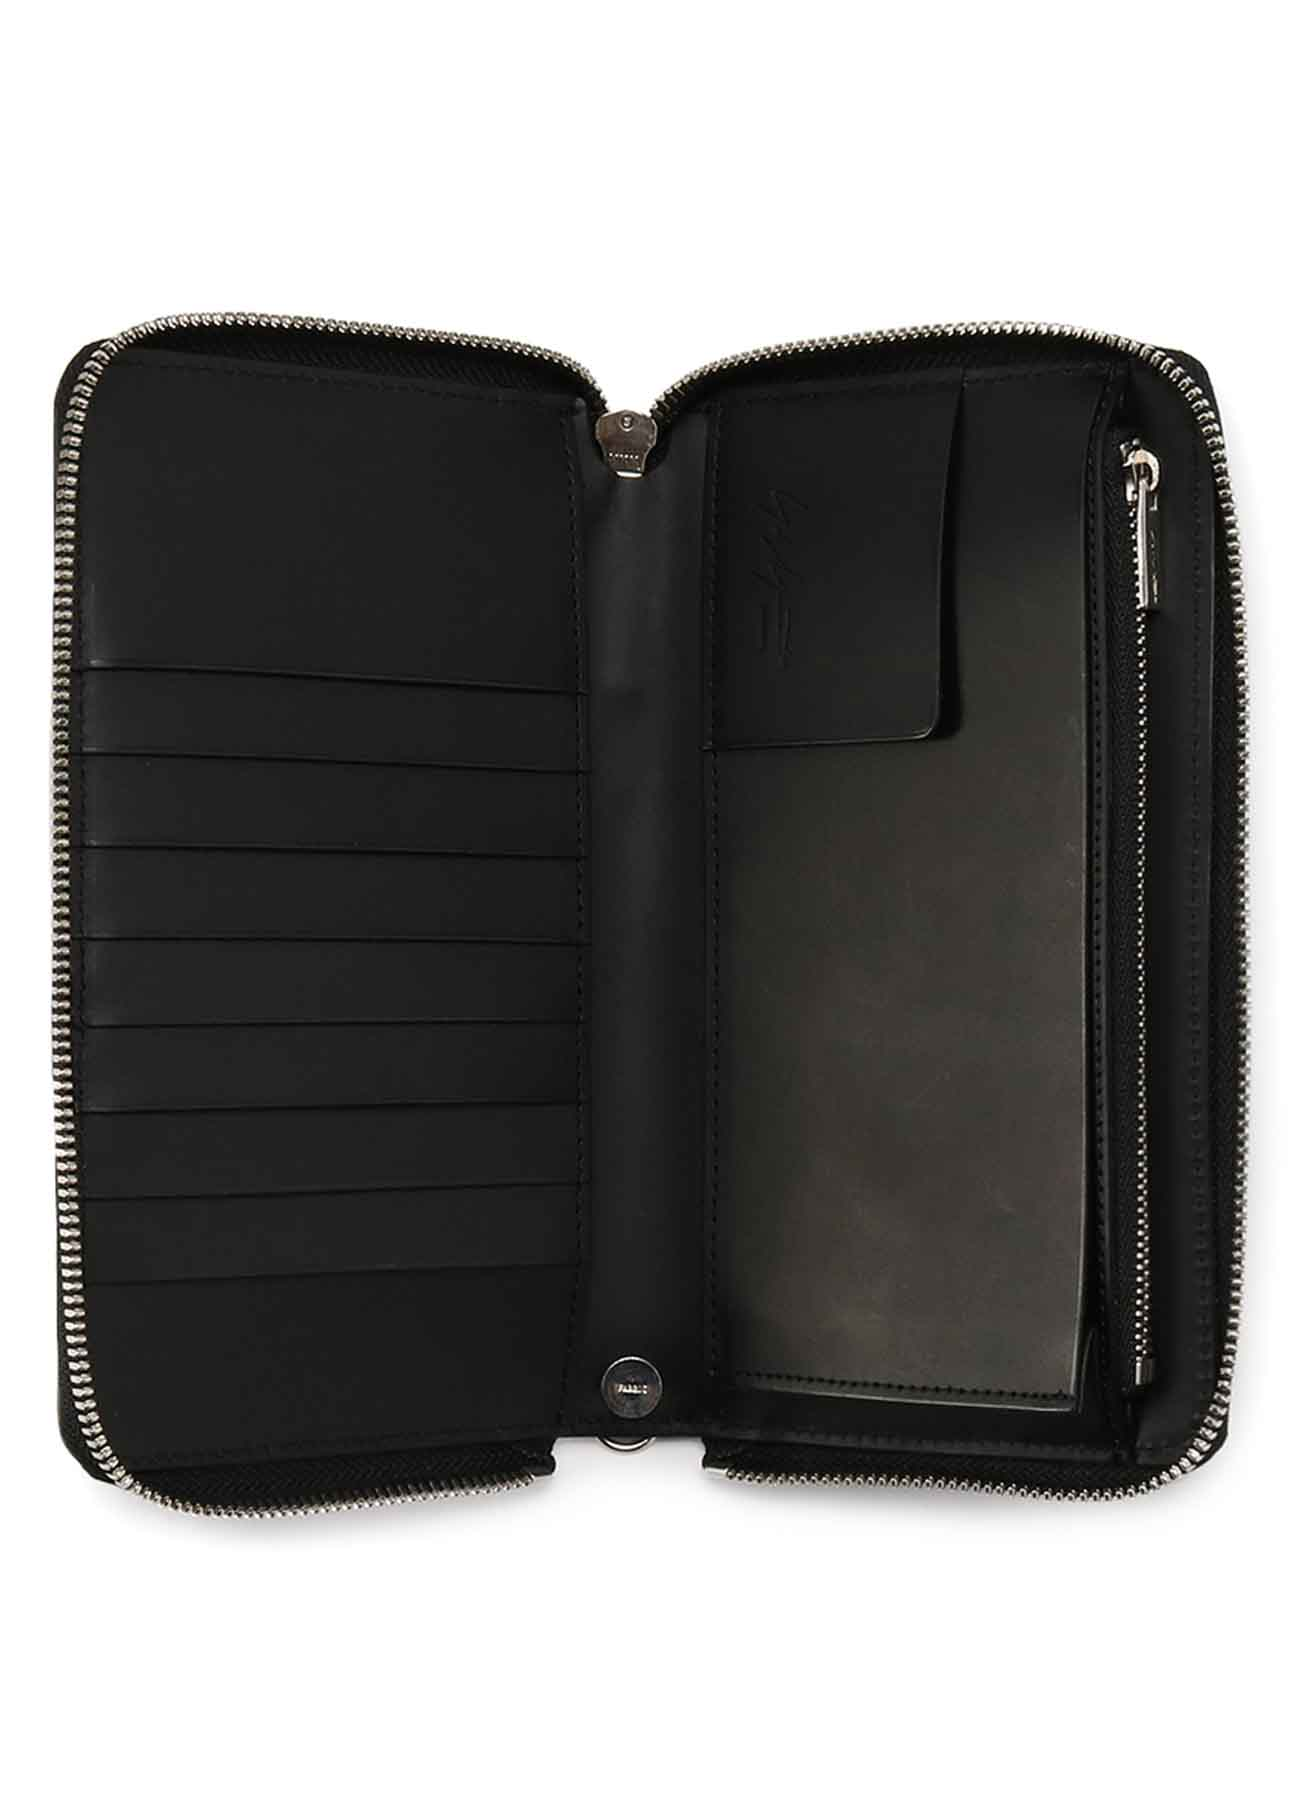 THICK UNFINISHED LEATHER FASTENER WALLET L